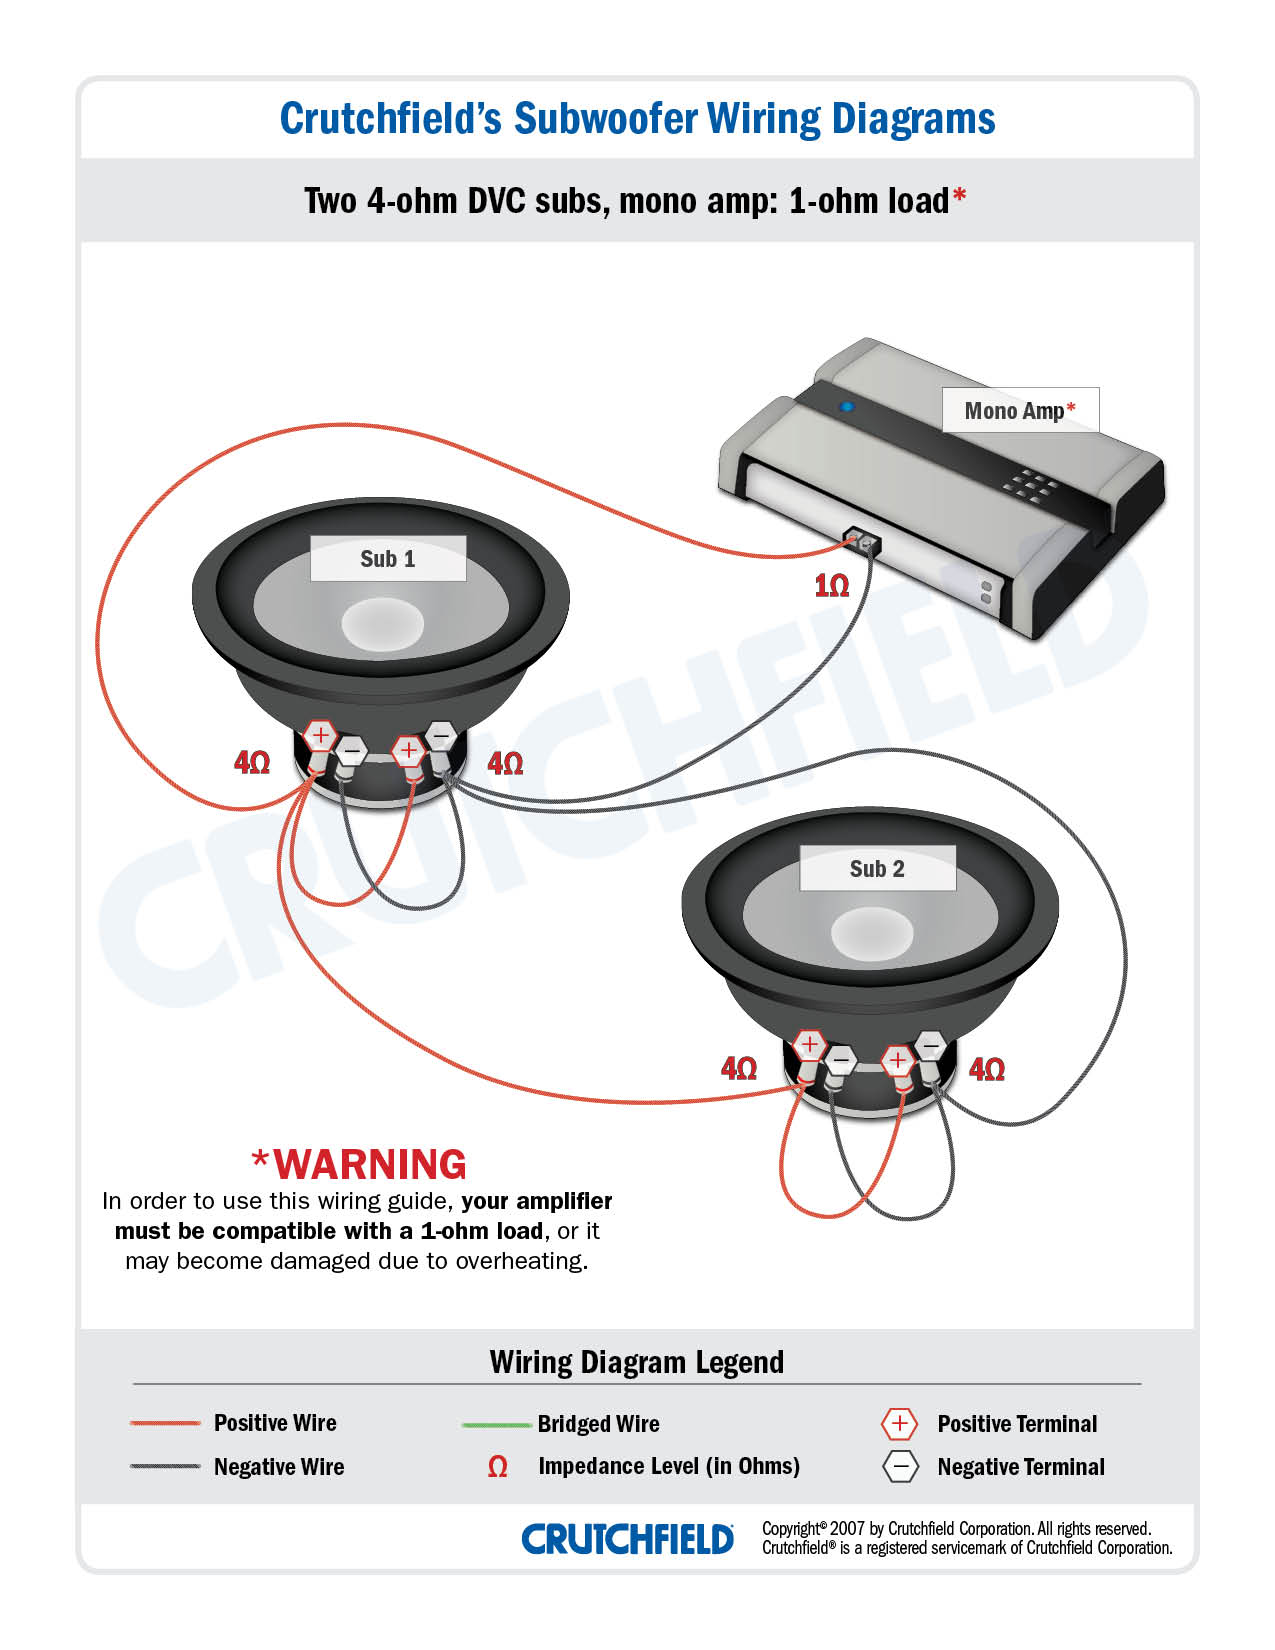 subwoofer wiring diagrams how to wire your subs rh crutchfield com amp install guide amp wiring guide for a profile amp251